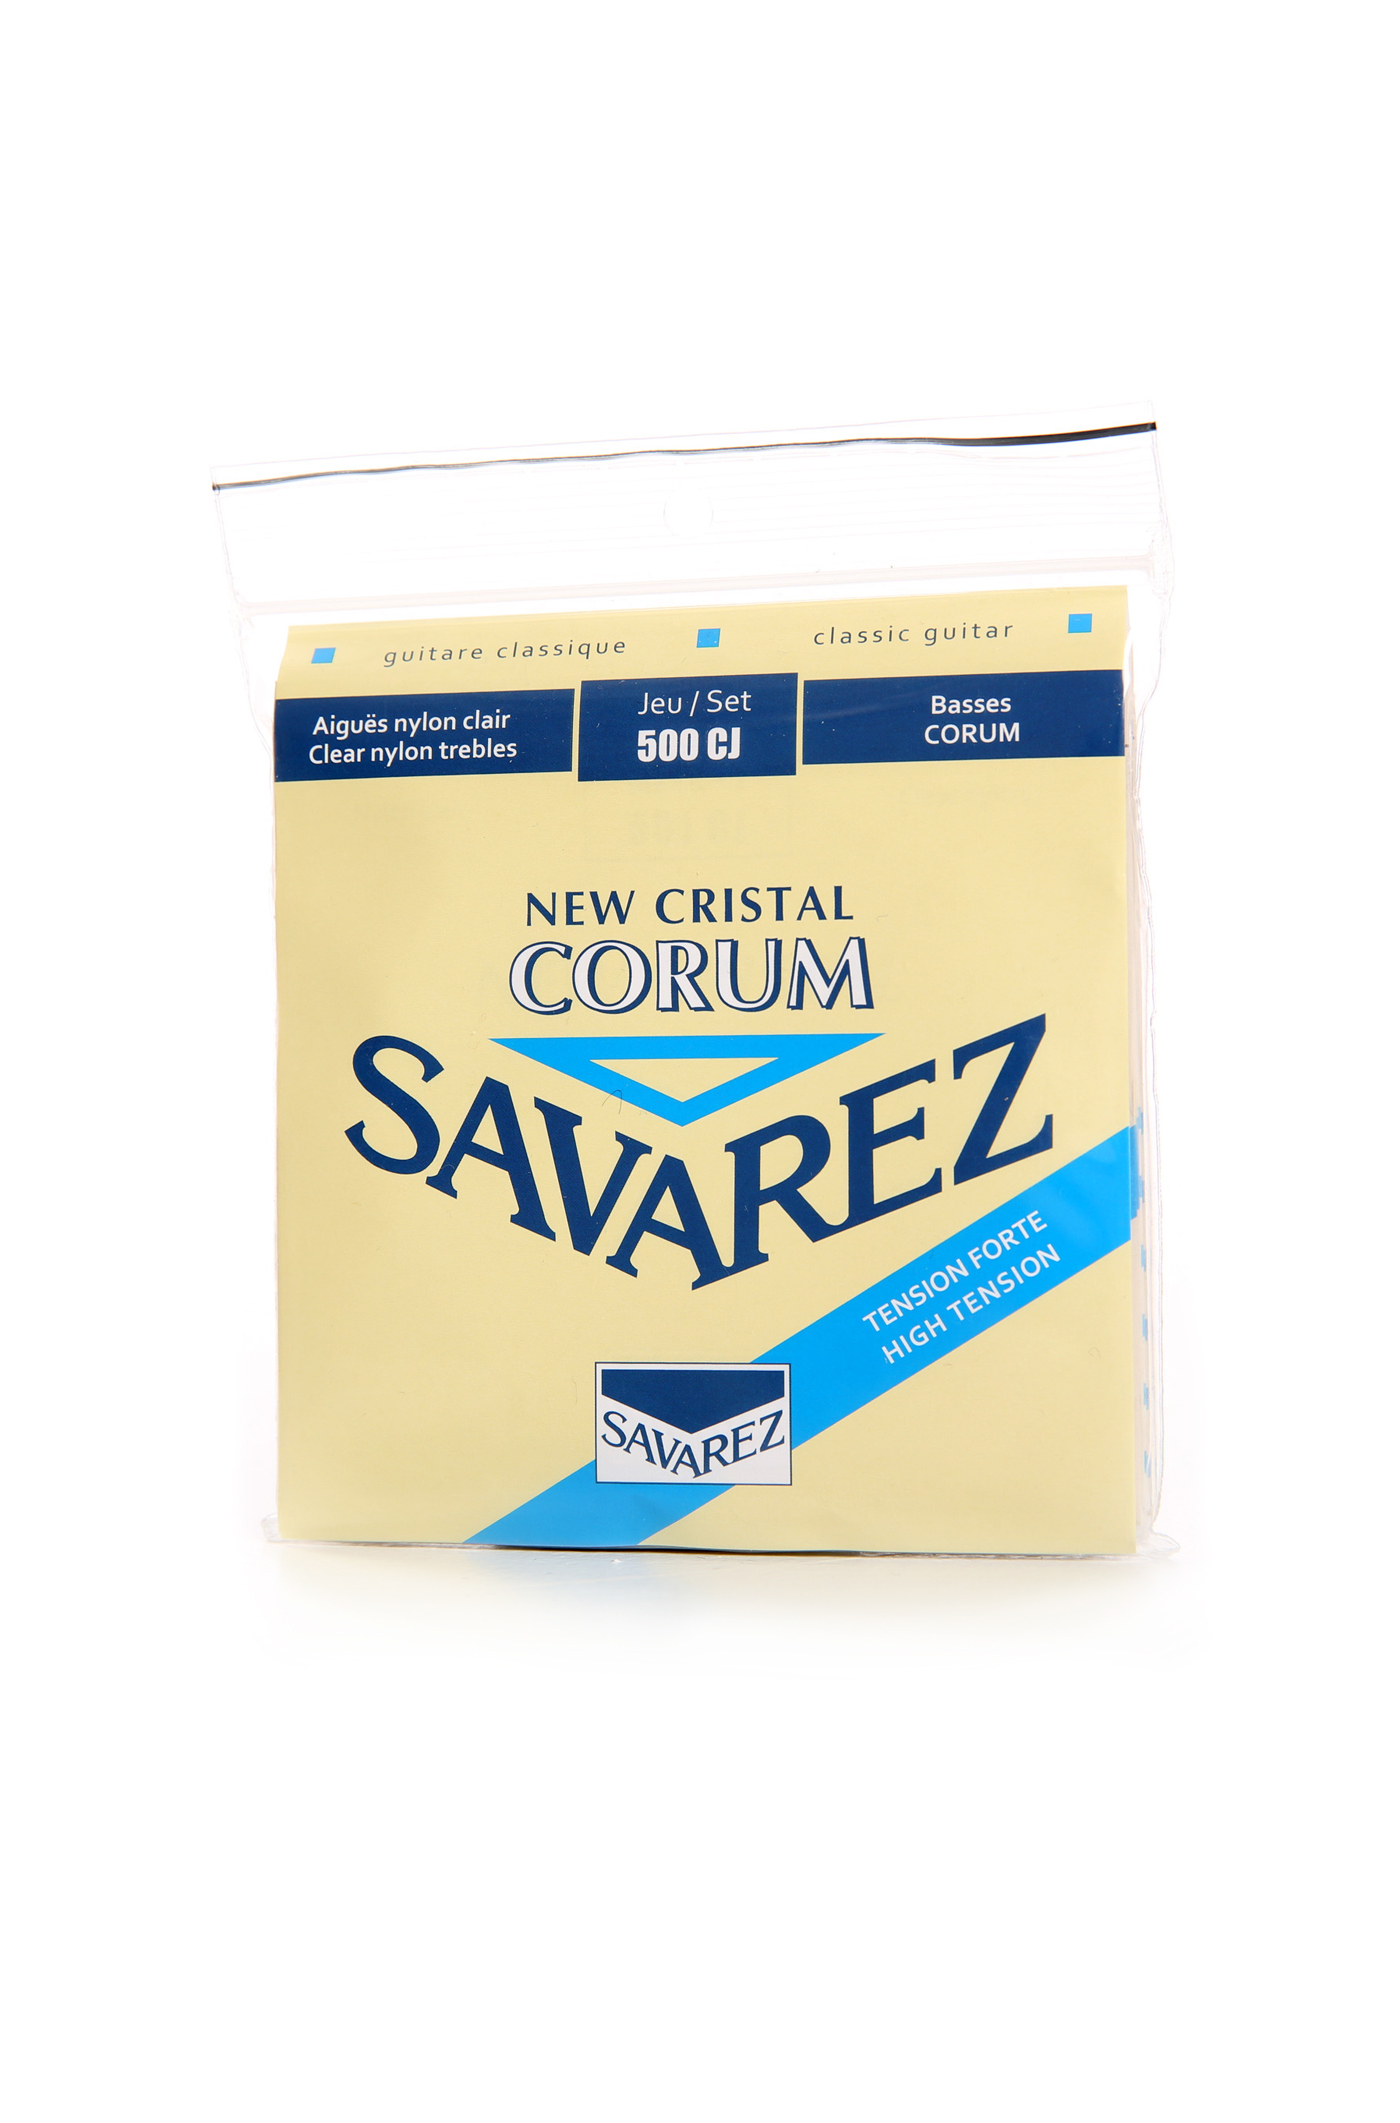 Savarez guitar strings 500 CJ high tension